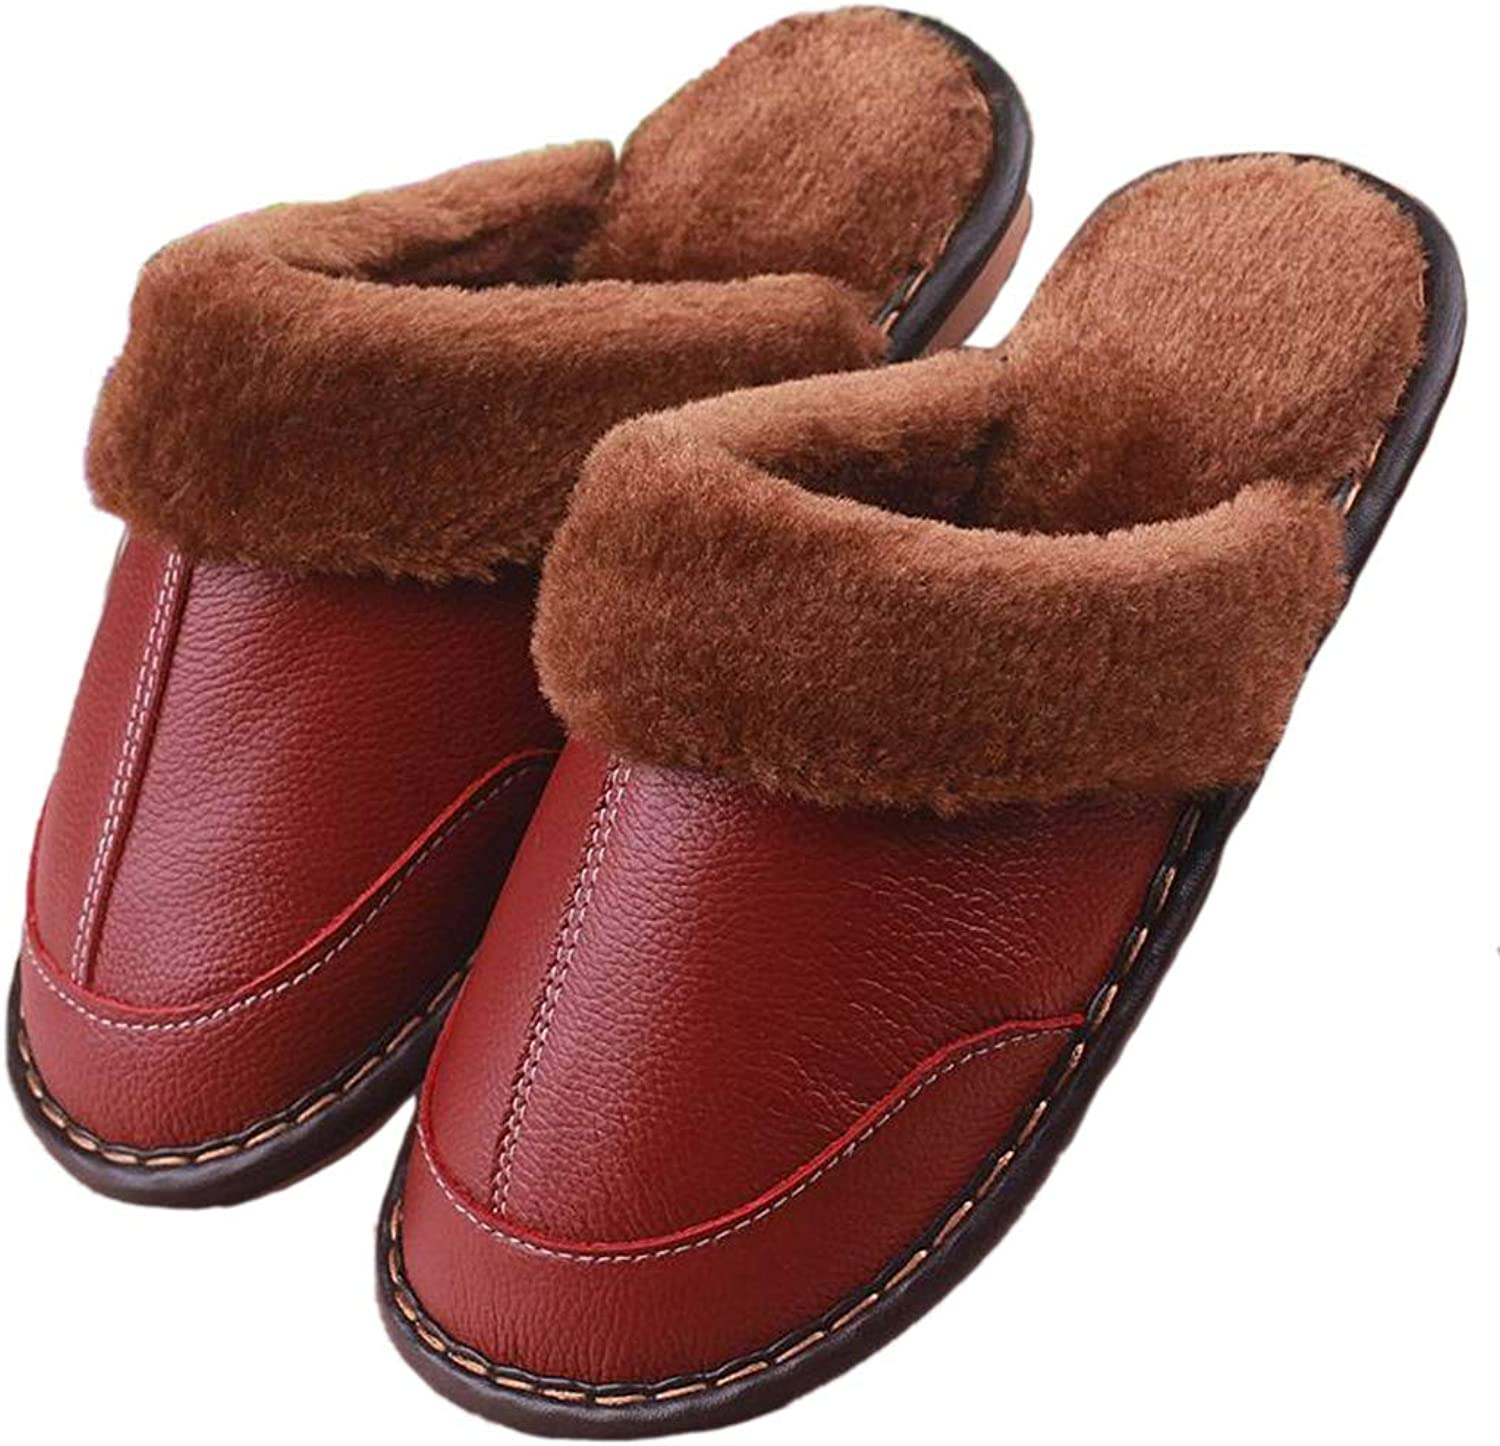 Nafanio Winter Warm Indoor shoes Thick Wool Women Men Couple Furry Sheepskin Genuine Leather Slippers